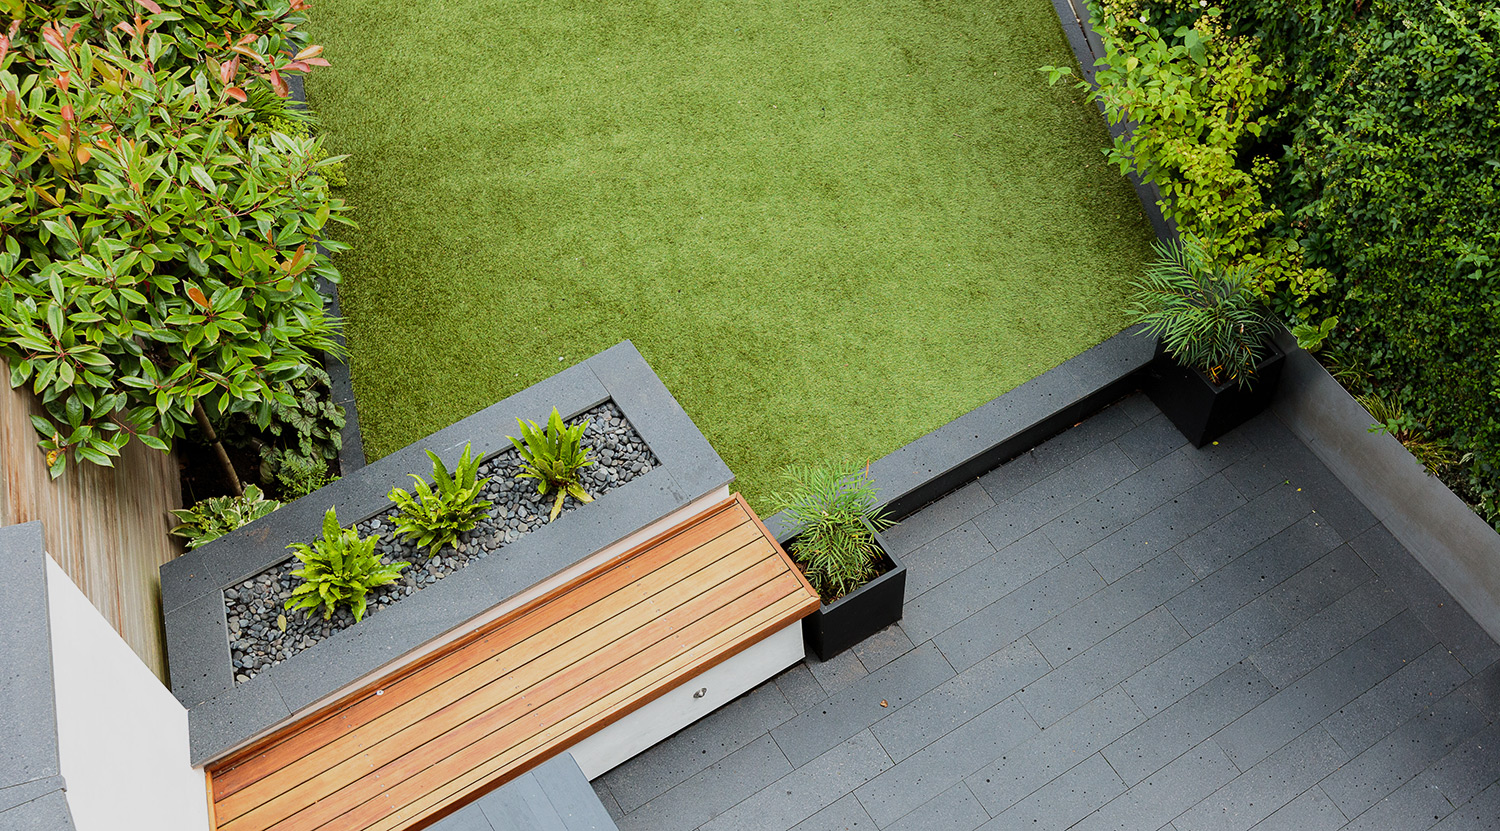 Considered Design for Beautiful Gardens